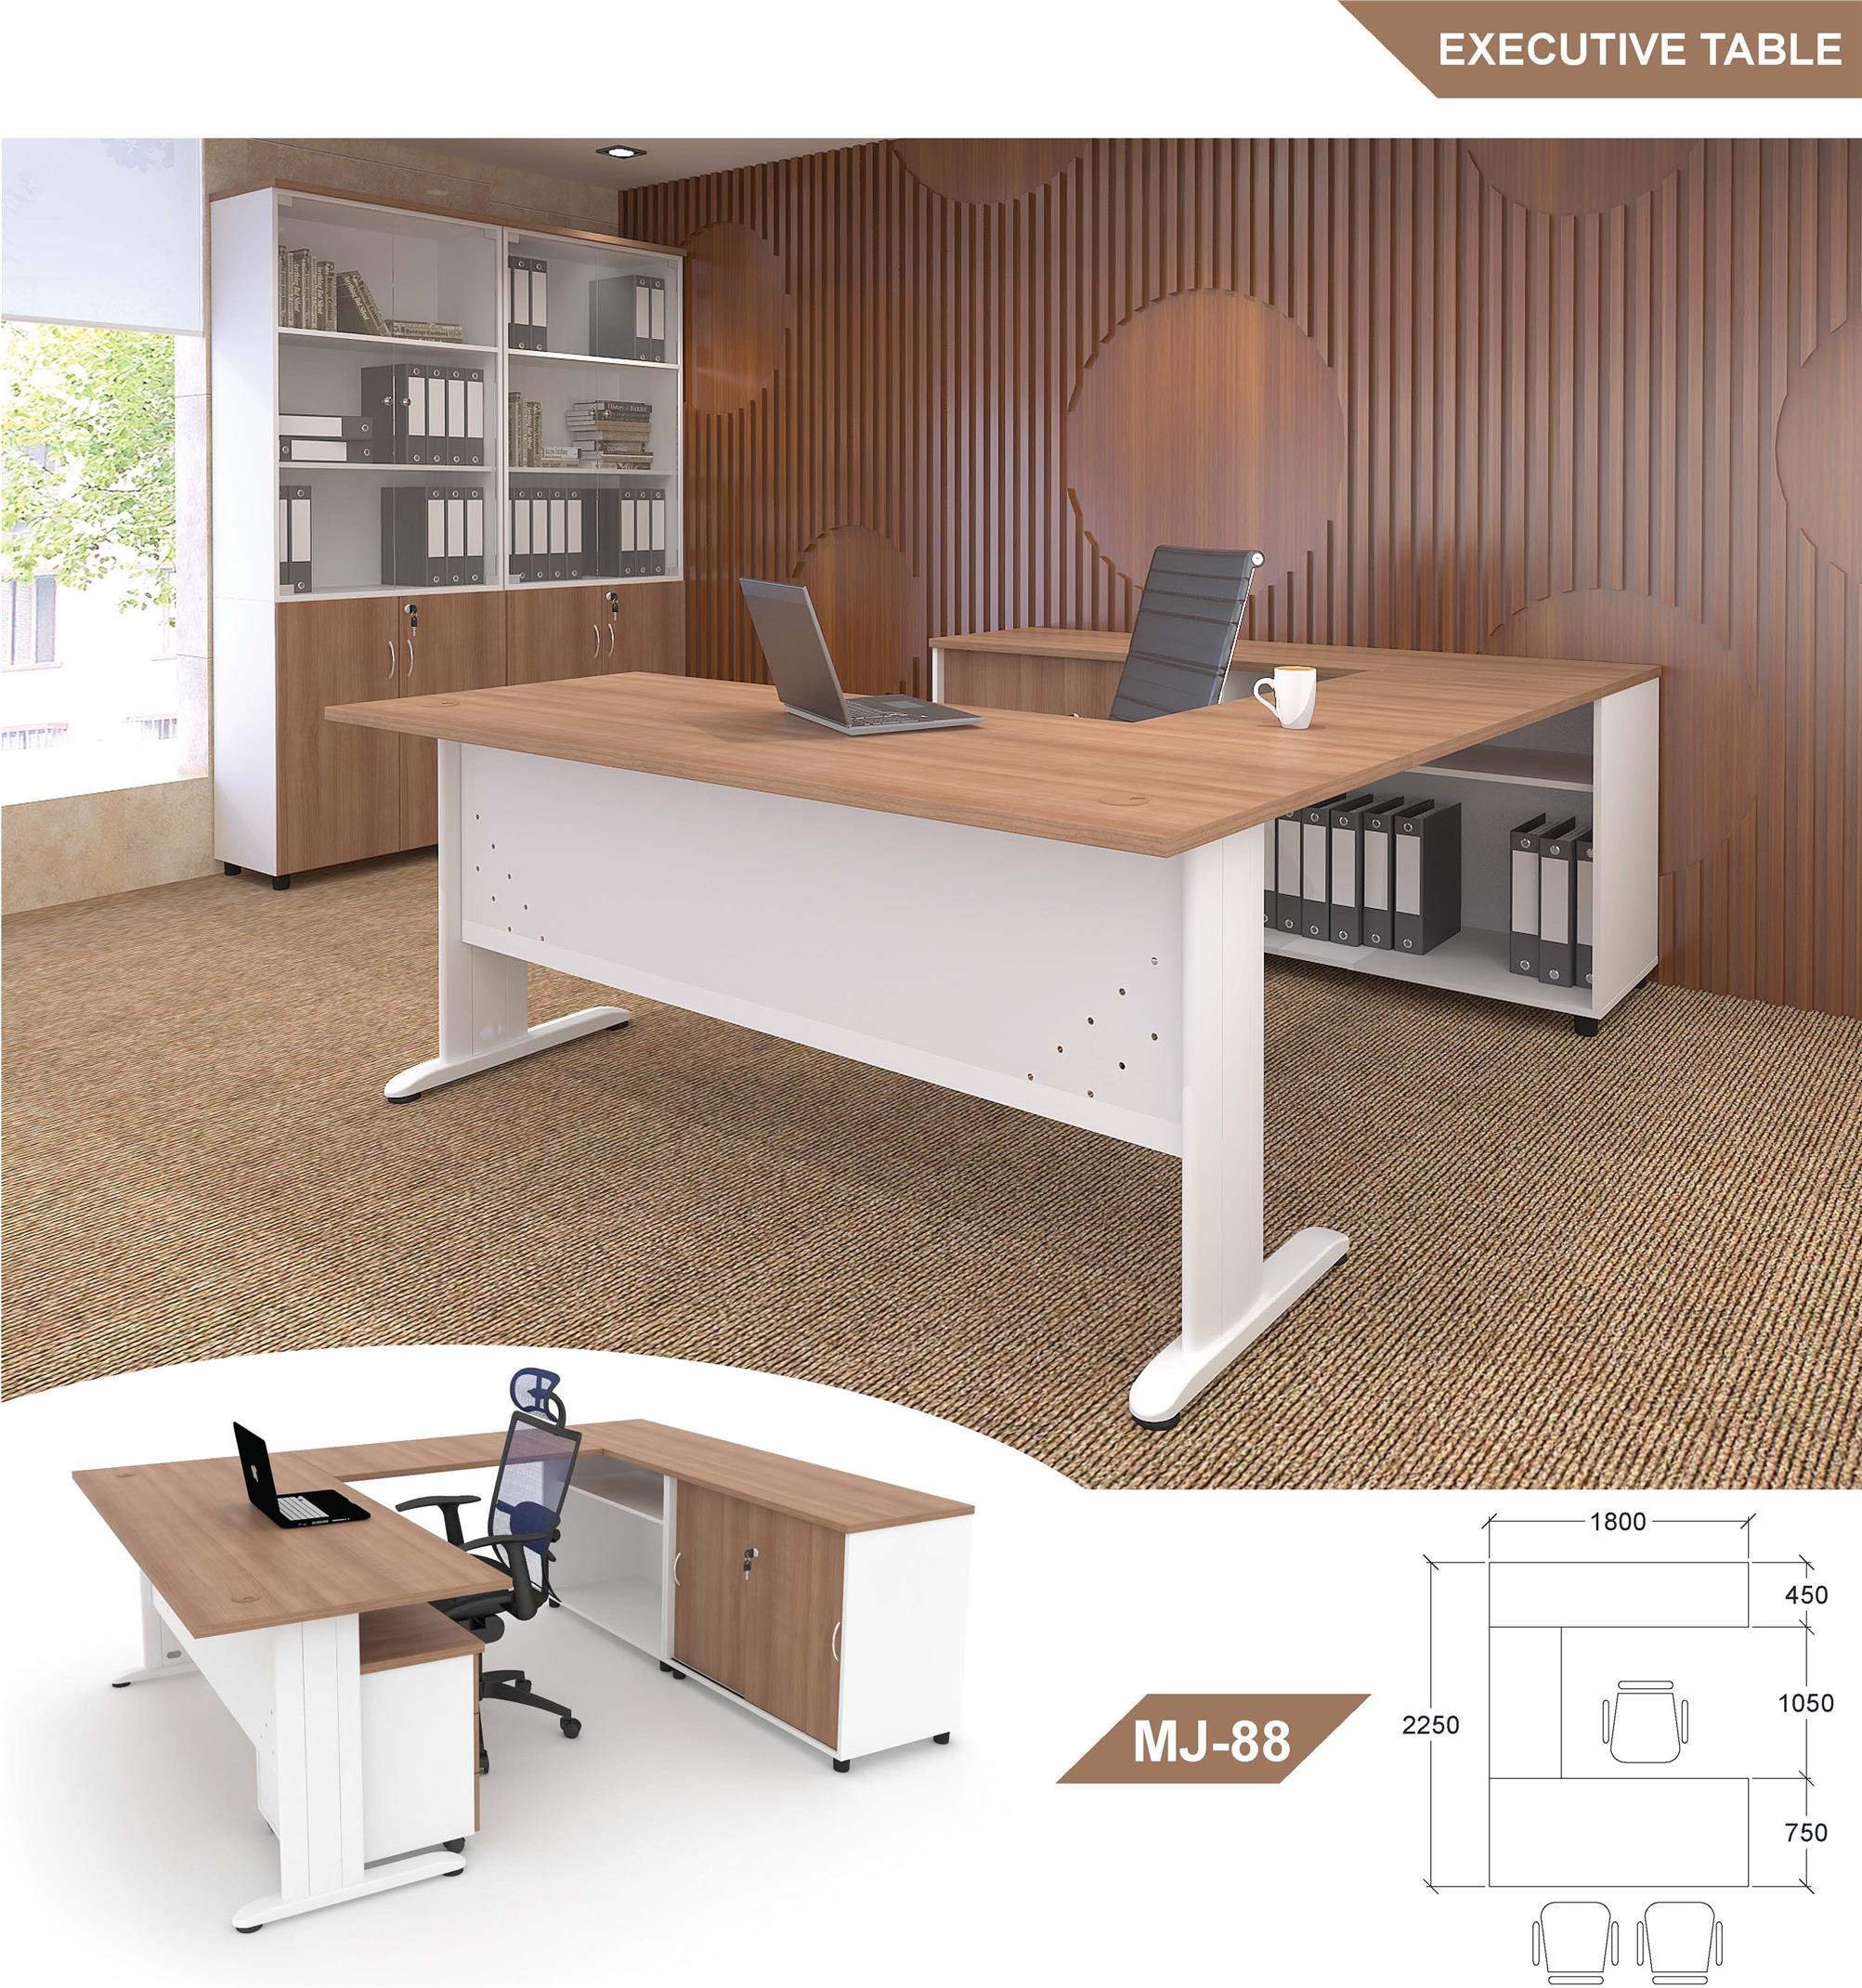 Office Furniture / Office Table / Executive Table MJ-88 (R)